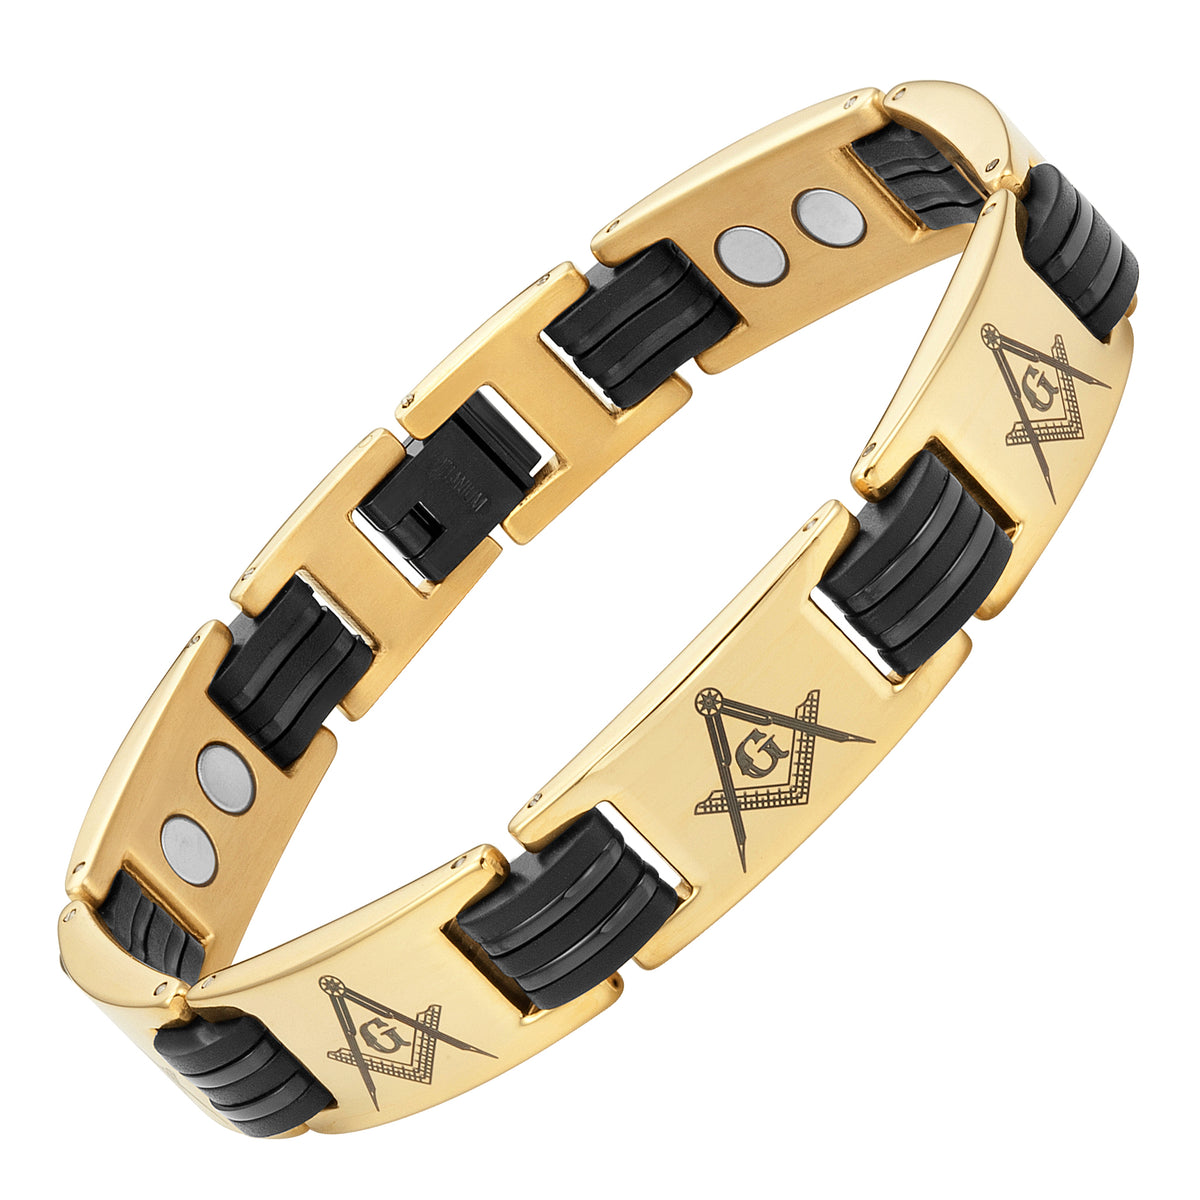 2018 Titanium Masonic Link Bracelet - Gold Color